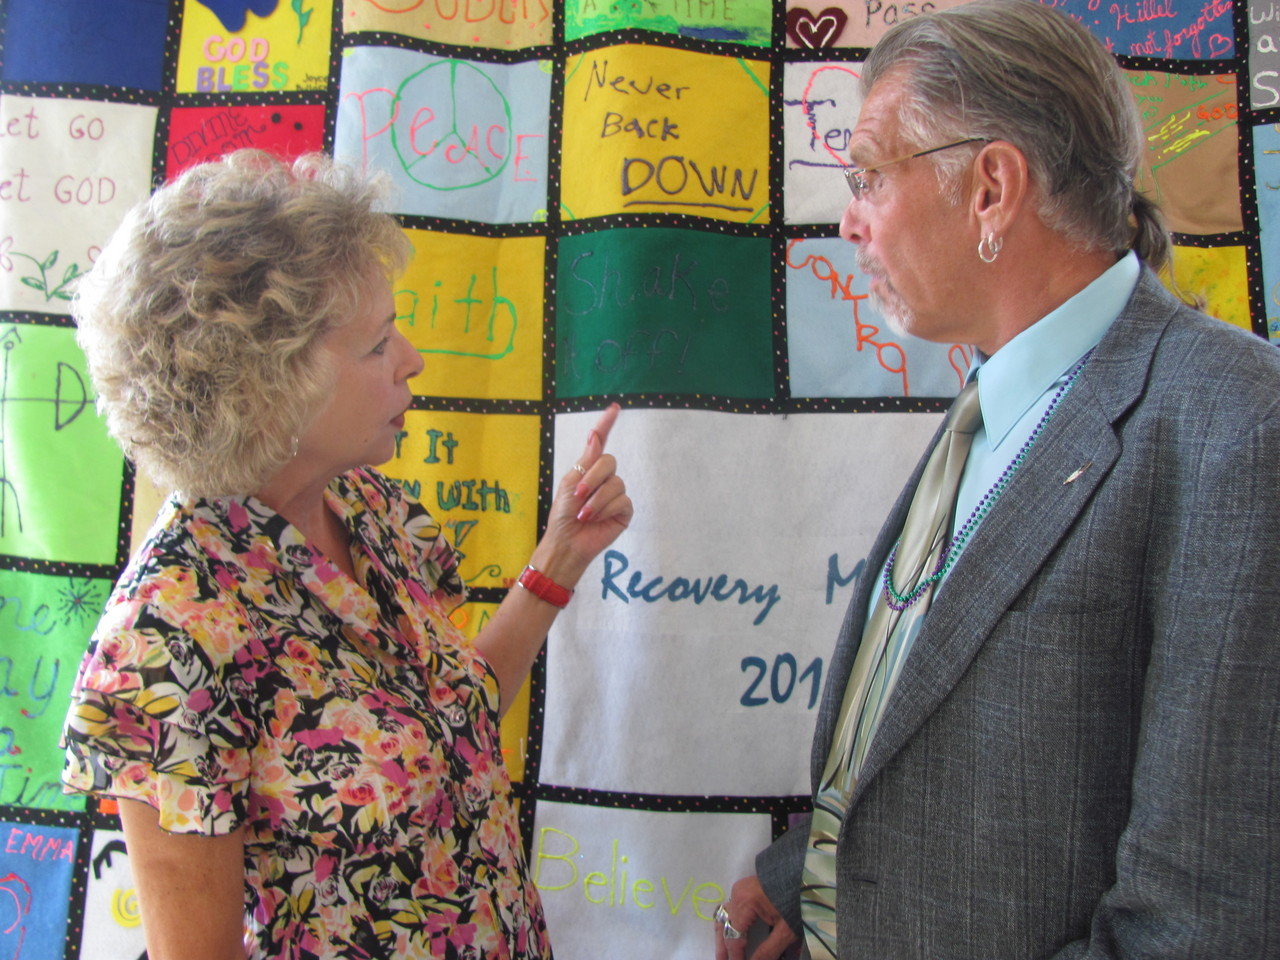 CELEBRATING RECOVERY:  Rep. Patricia Serpa, D-27, West Warwick discusses one of the colorful panels in the 2010 Recovery Quilt with Jim Gillen, clinical coordinator of Recovery Services at The Providence Center. Gillen will offer a clergy and pastoral training program on Sept. 23 at the Cathedral of SS. Peter and Paul.